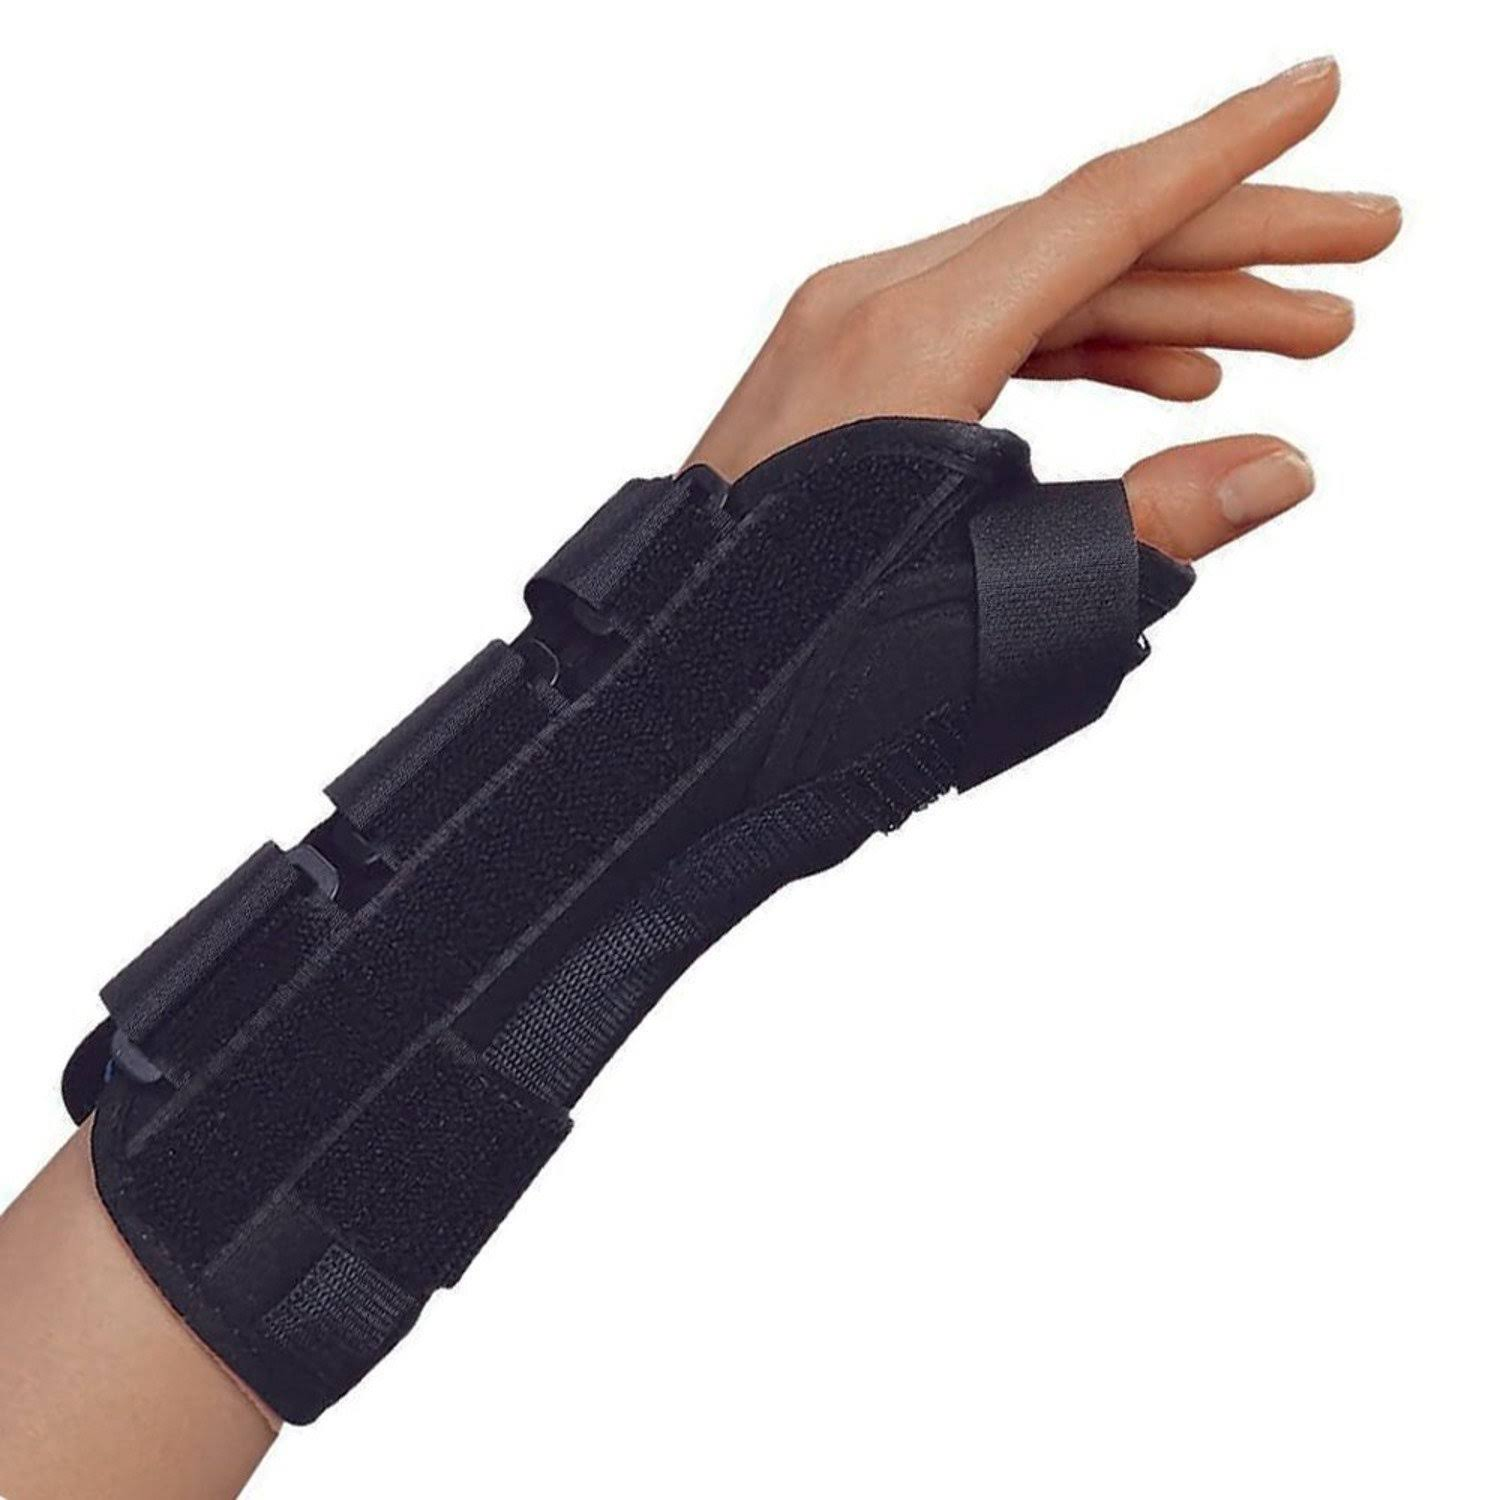 OTC Wrist-Thumb Splint - Black, Large, Left